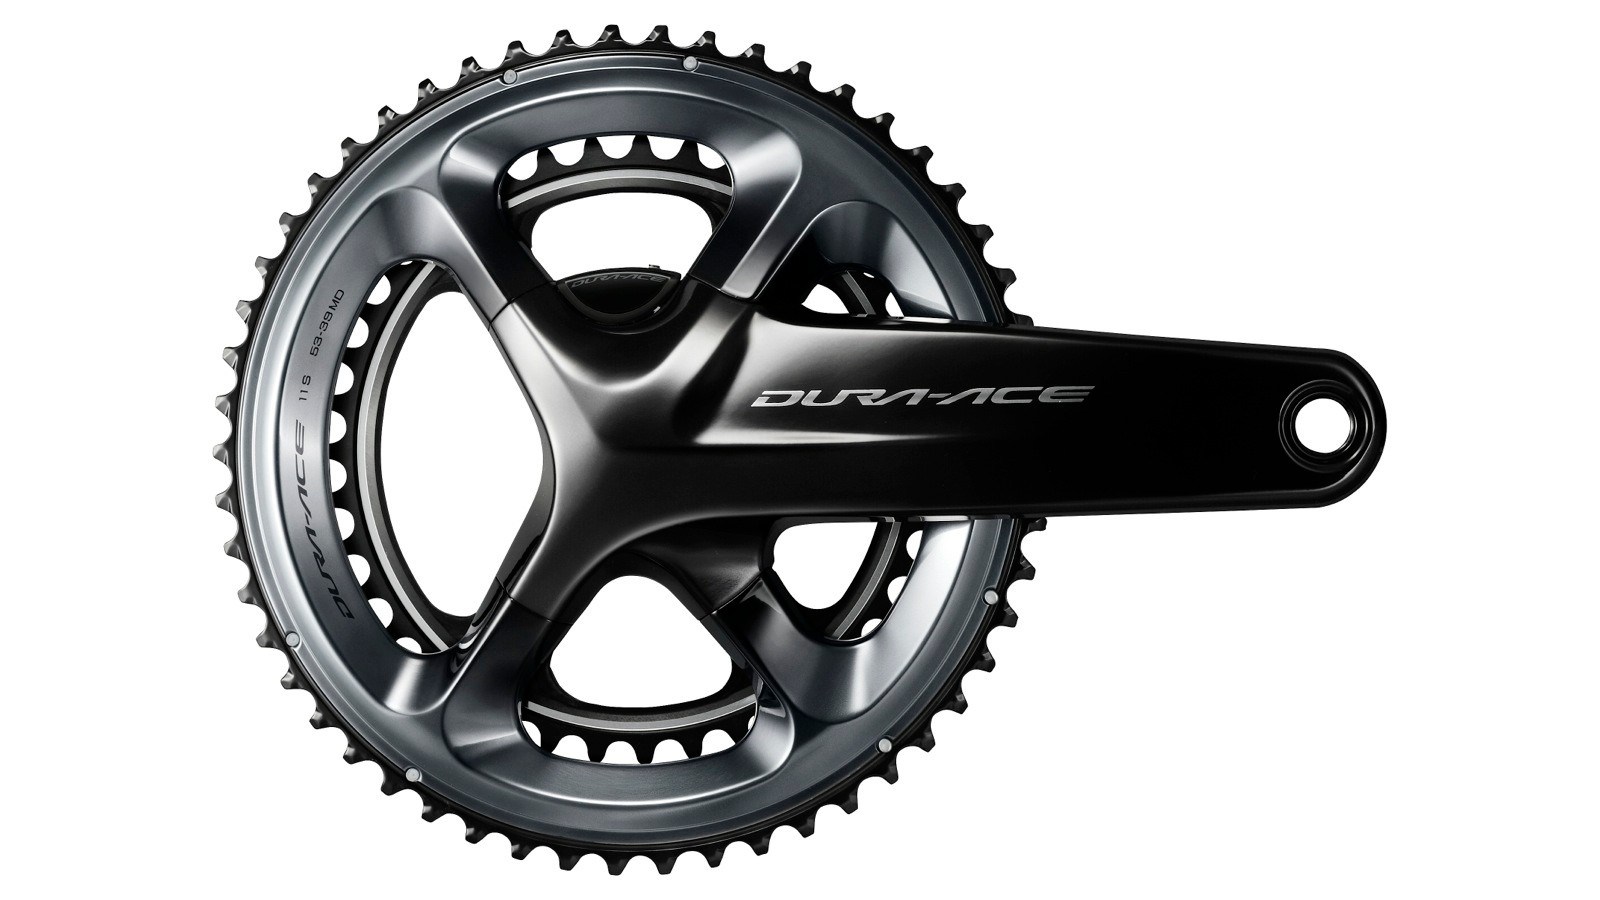 The new Shimano Dura-Ace R9100-P power meter will be available Nov. 1